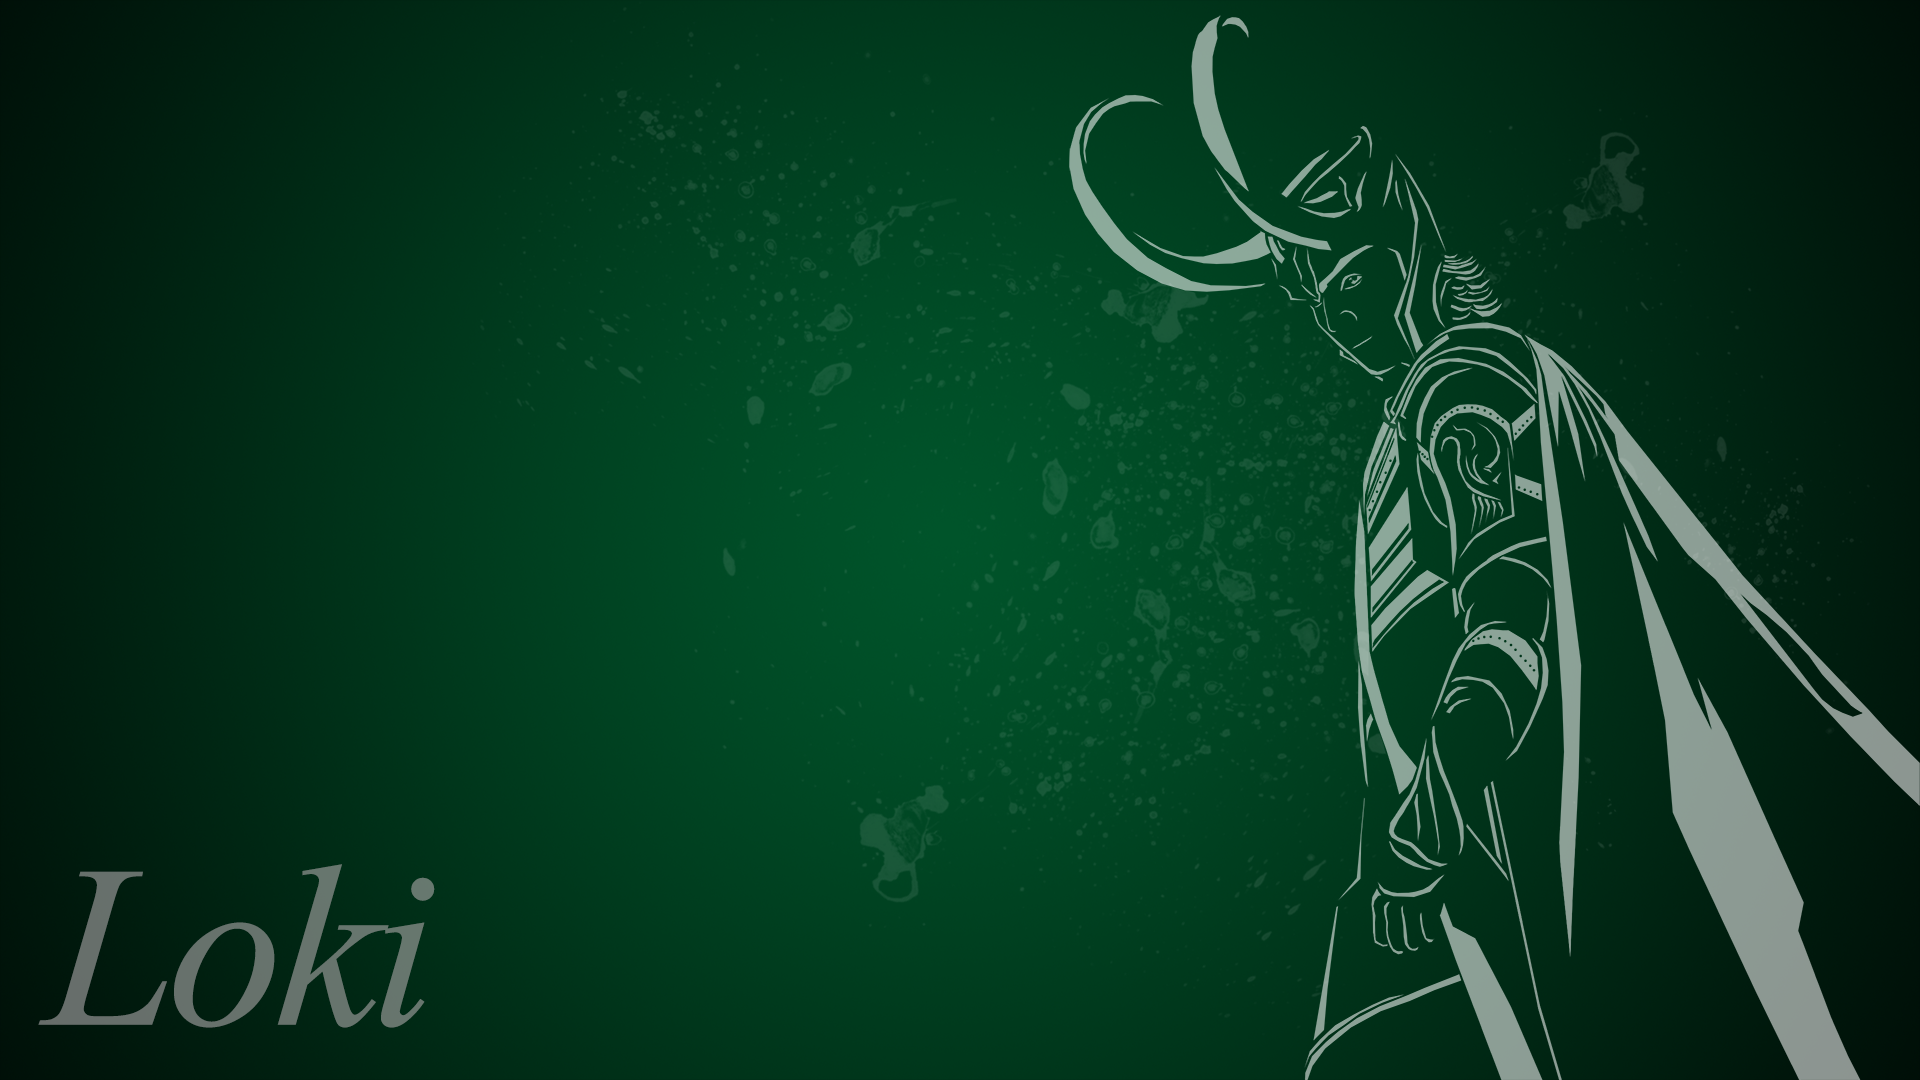 Download 40 loki wallpaper hd for desktop - Wallpapers pc ...